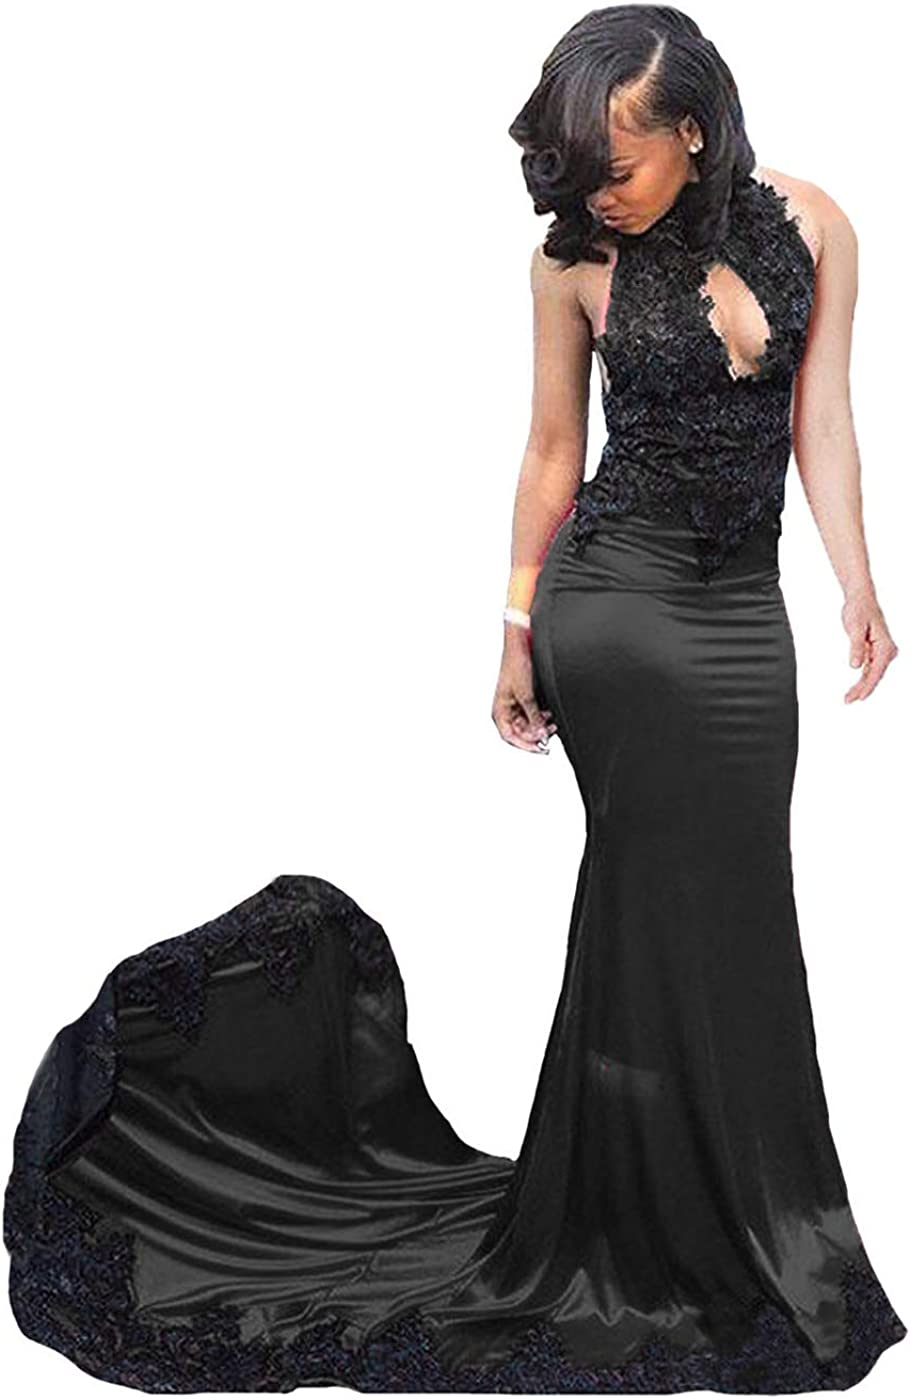 Fair Lady Sexy Black High Neck Mermaid Lace Prom Dresses Long Backless  Bridesmaid Dresses Evening Gowns